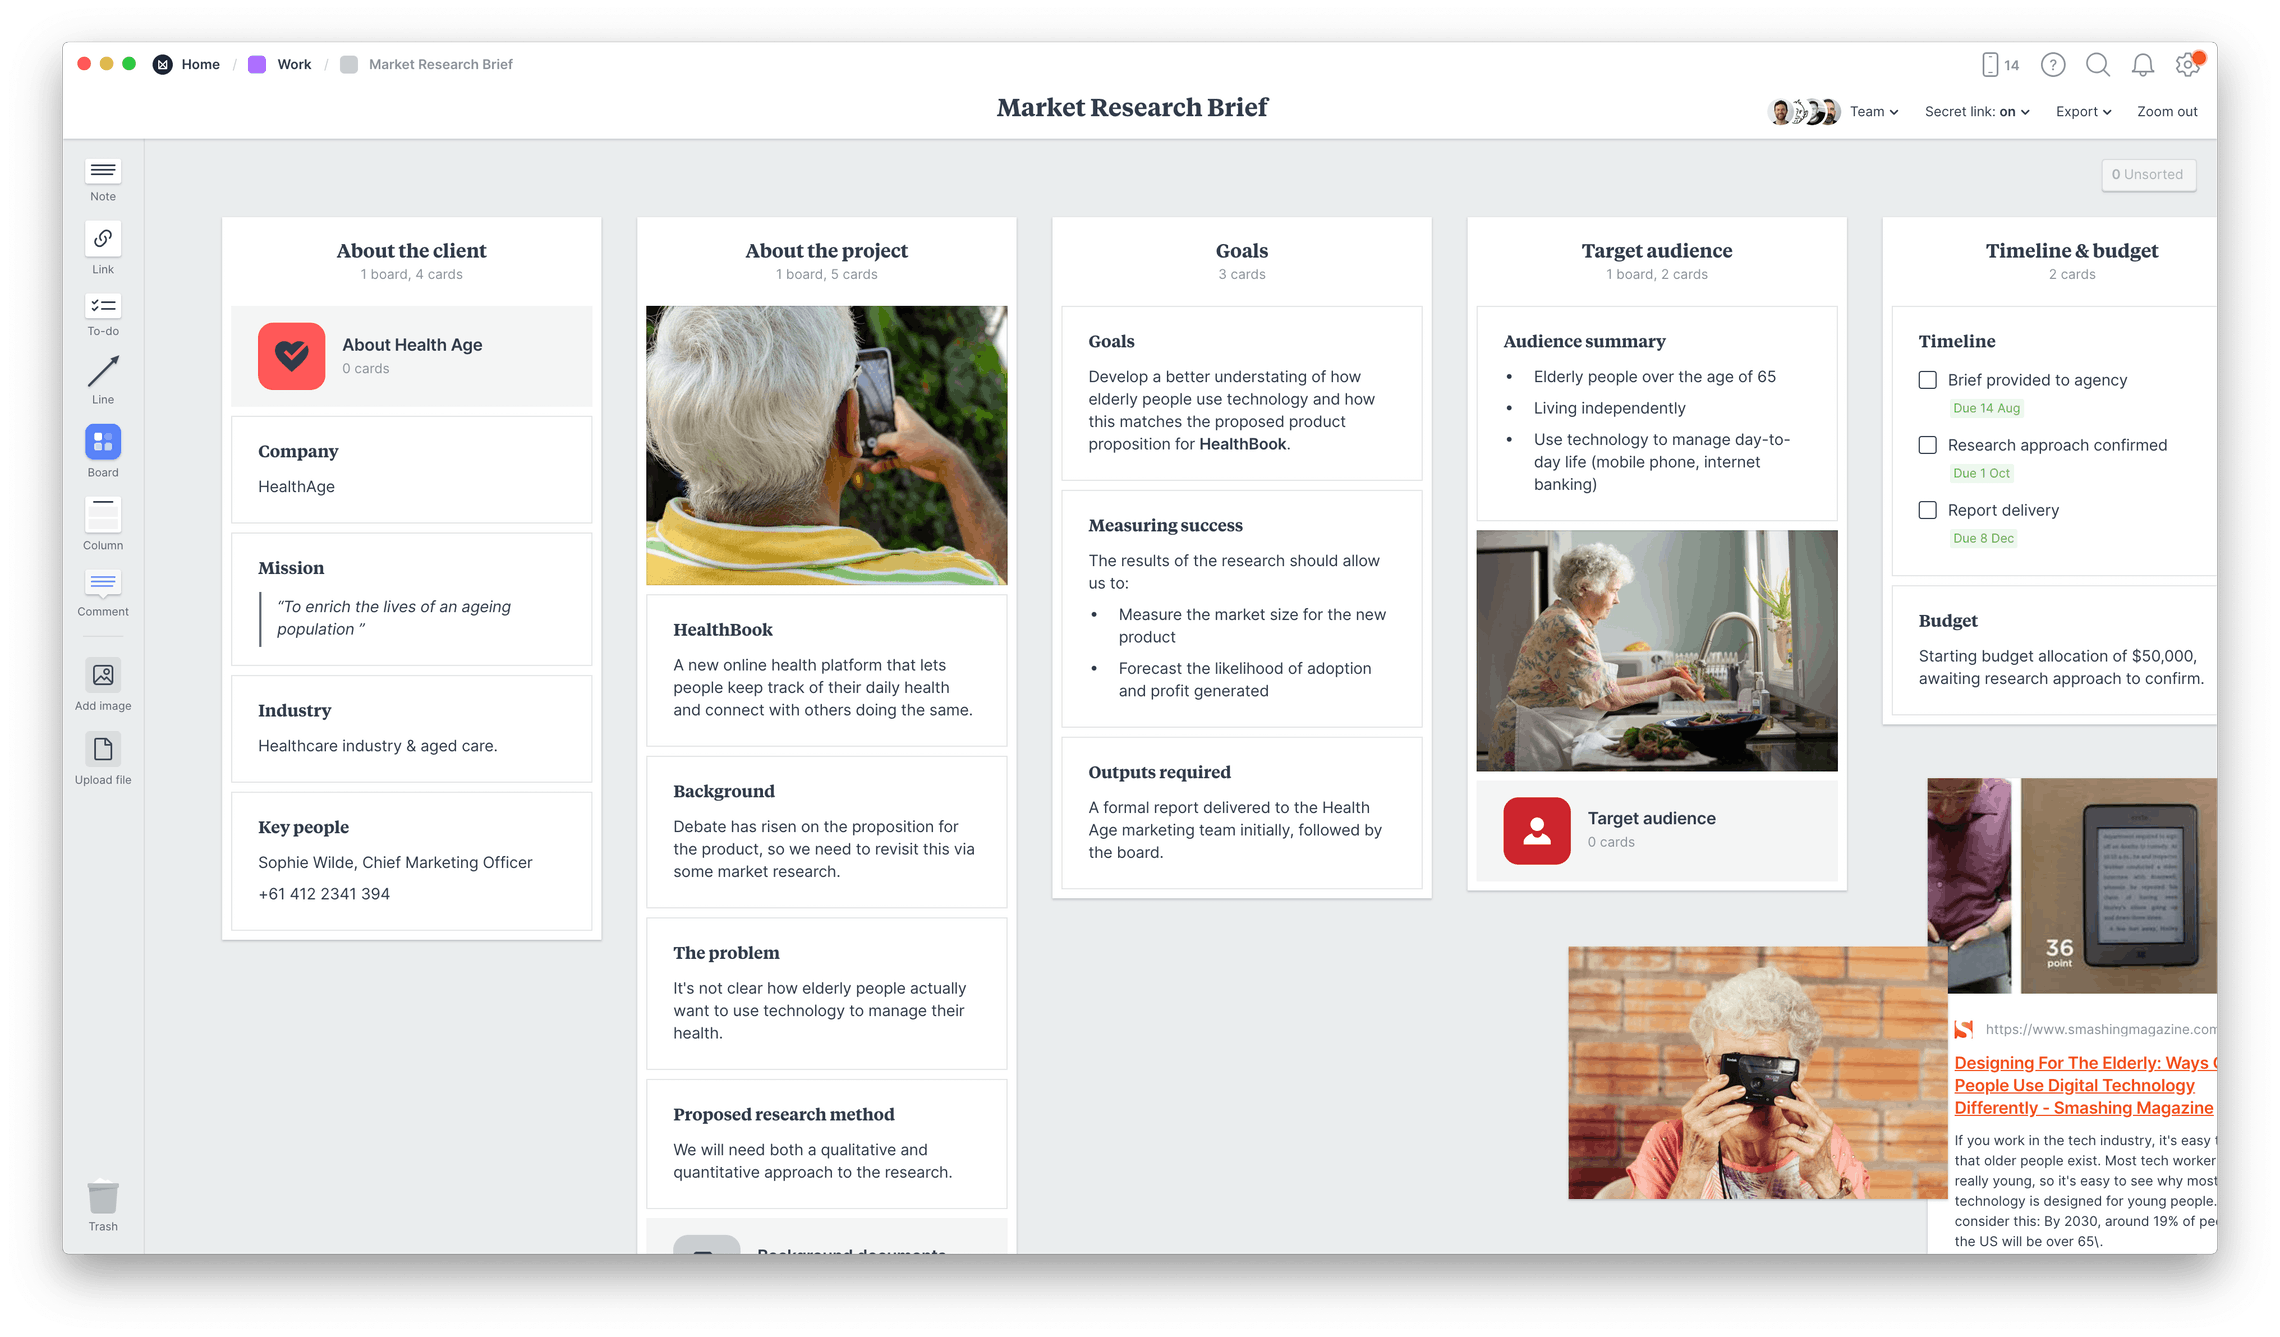 Market Research Brief Template, within the Milanote app